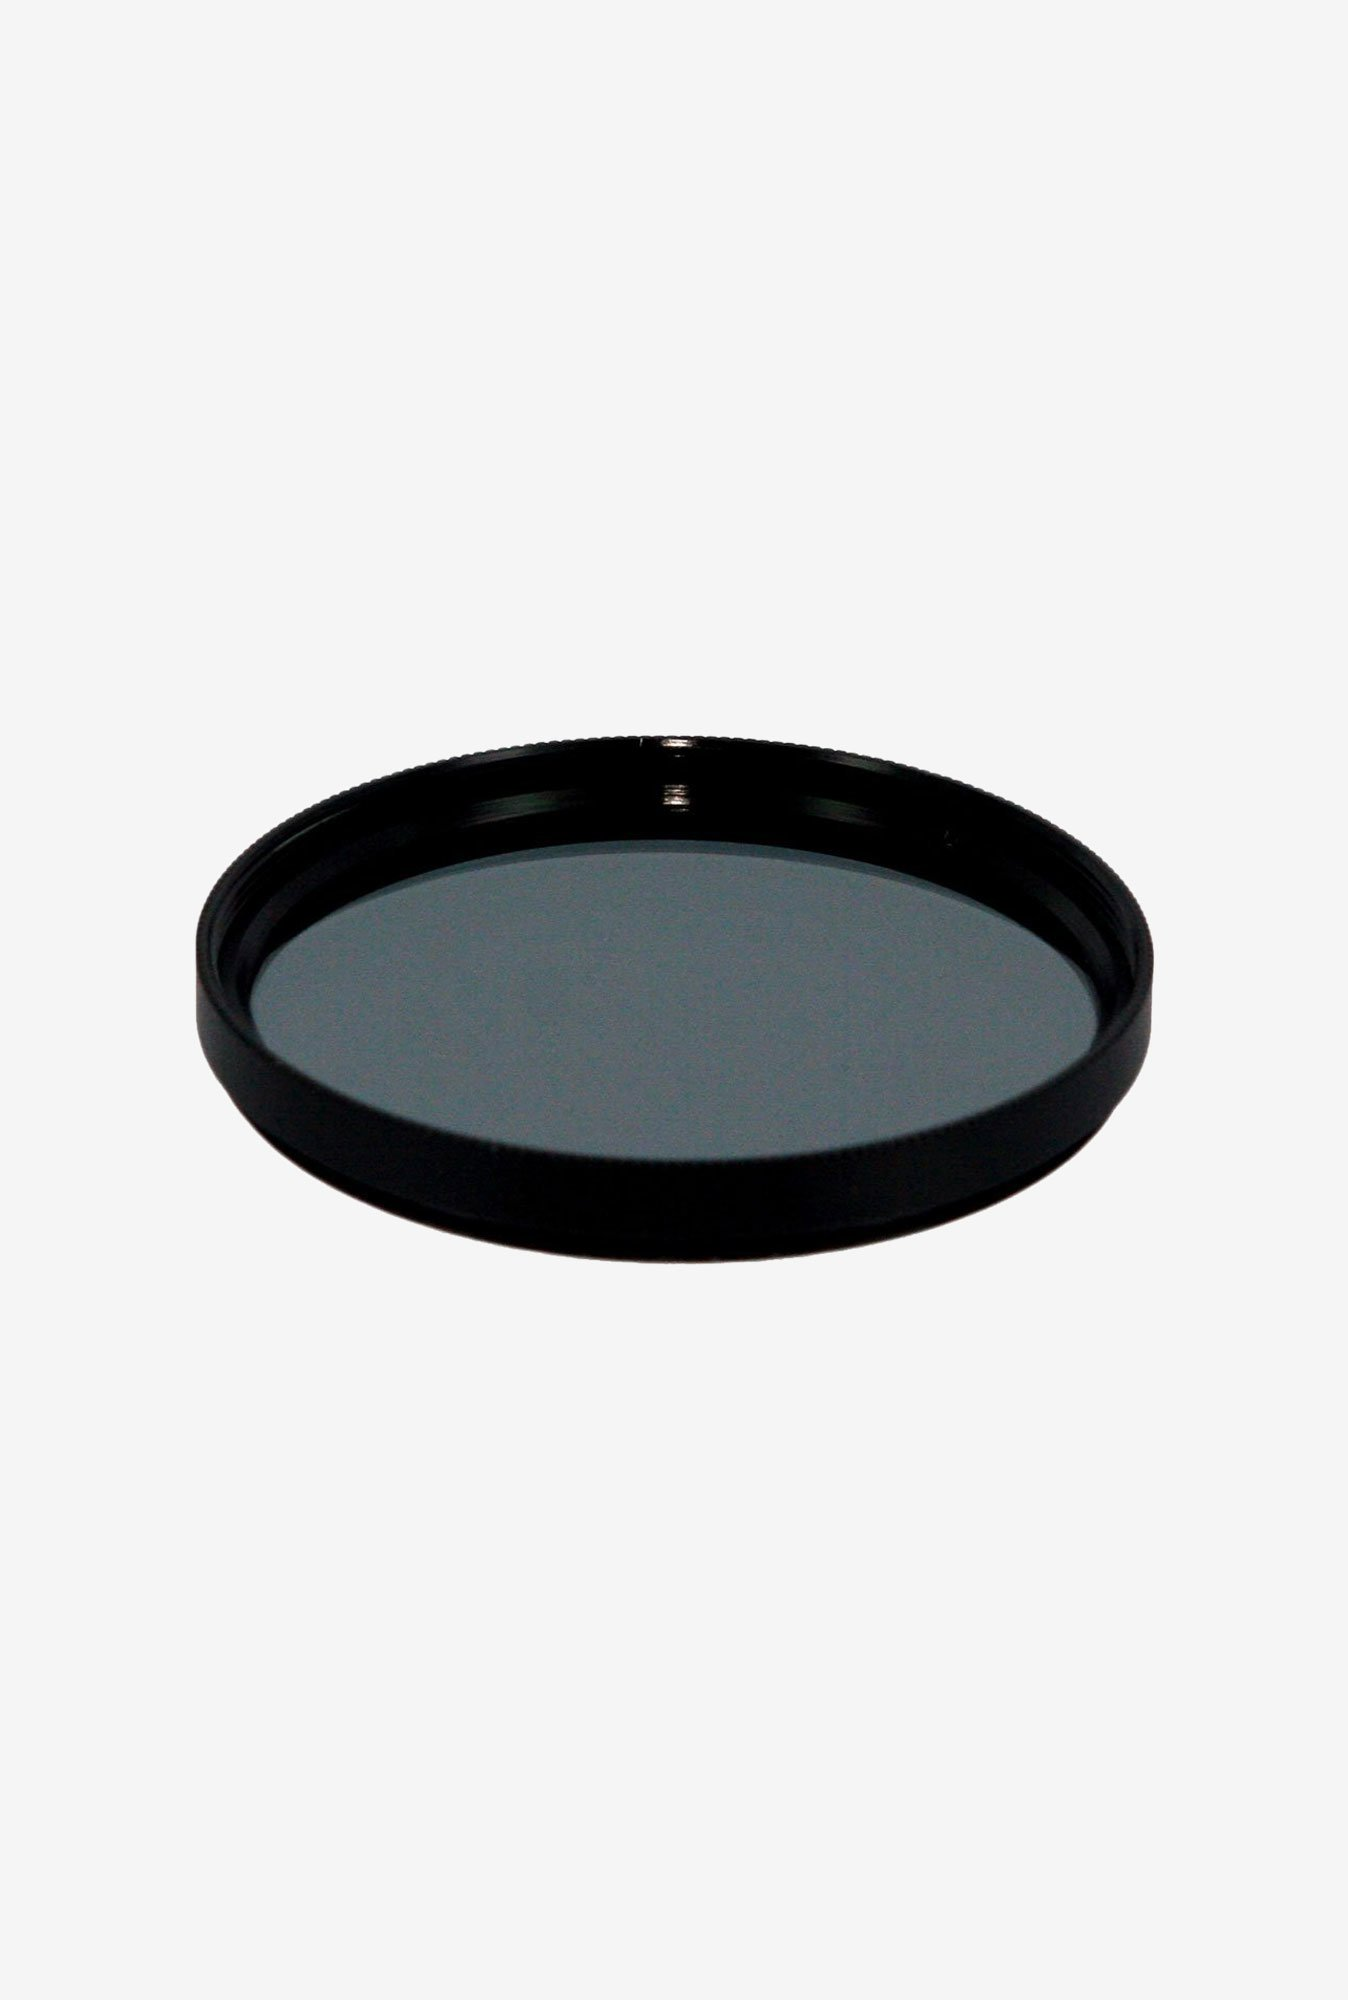 Dolica CF6-ND67 Neutral Density Filter (Black)